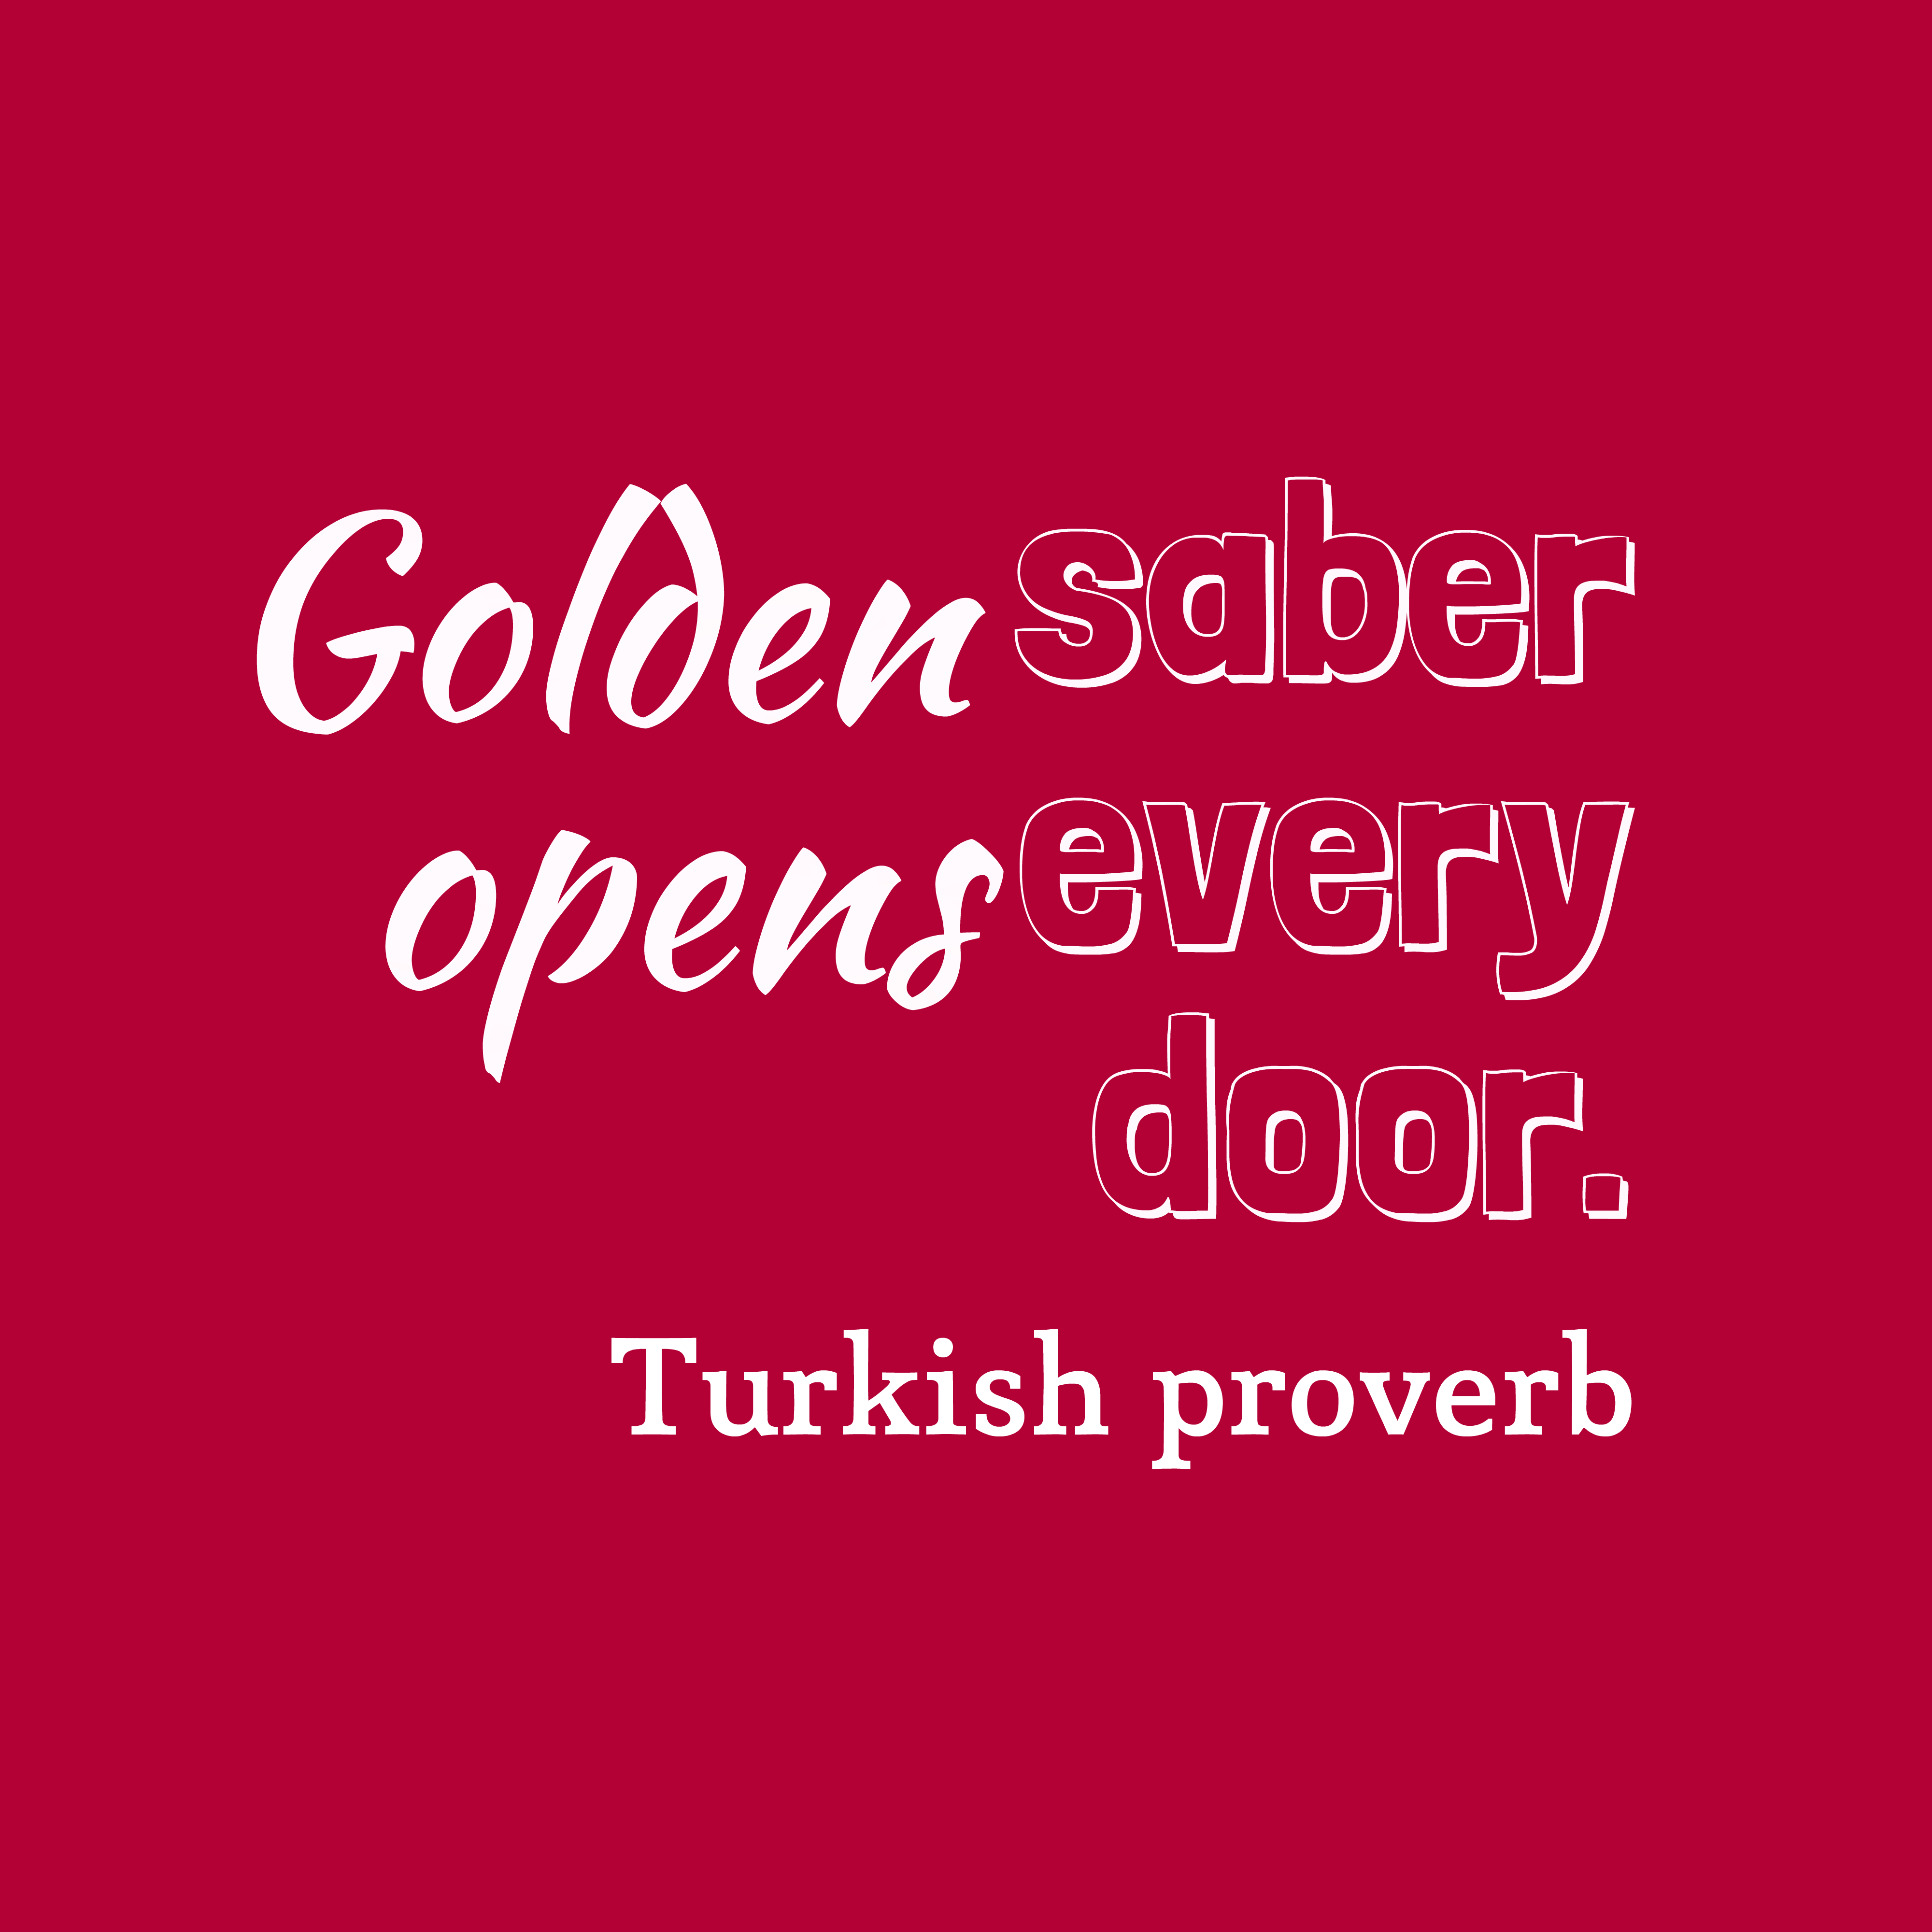 Quotes image of Golden saber opens every door.